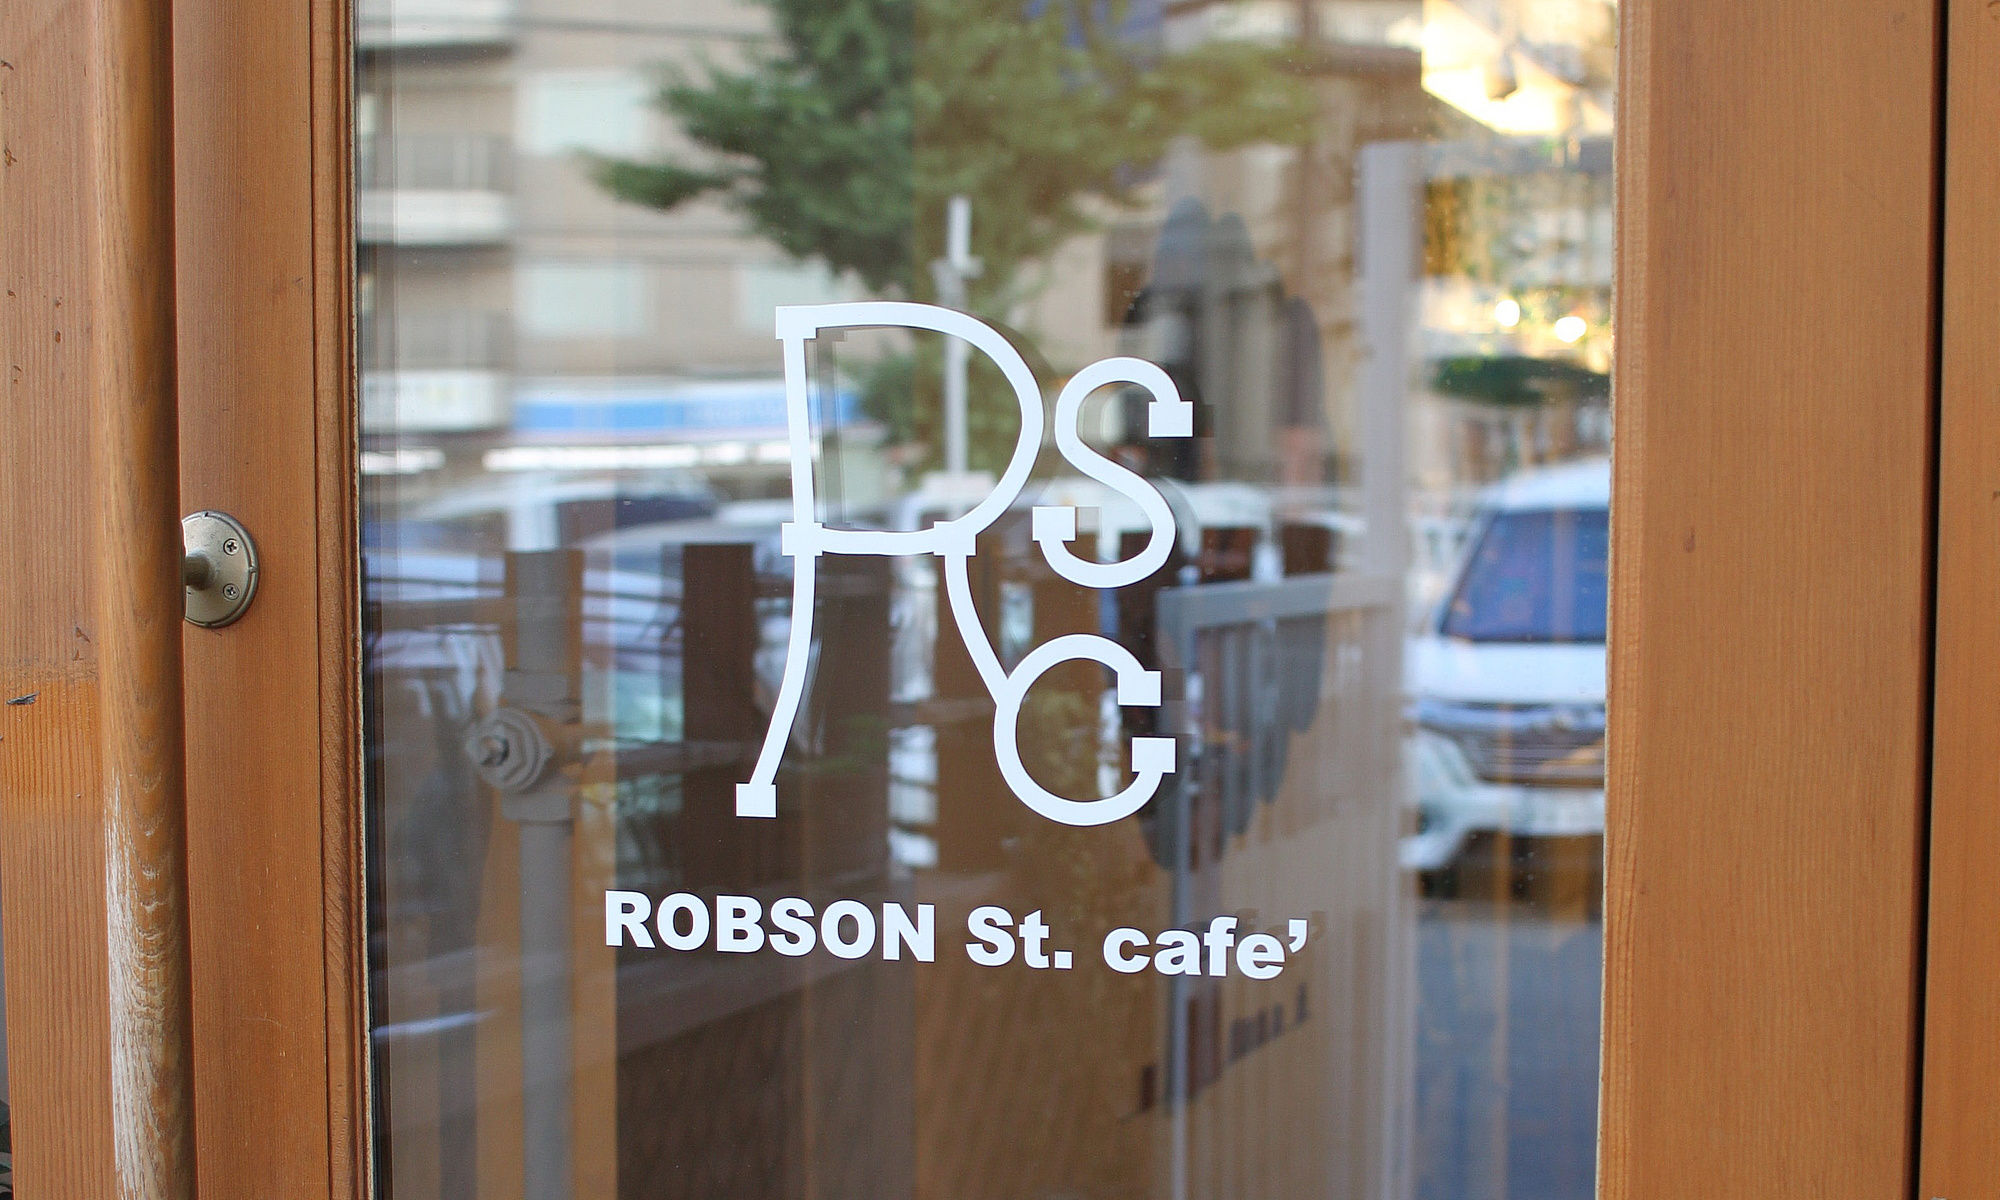 Robson Street Cafe